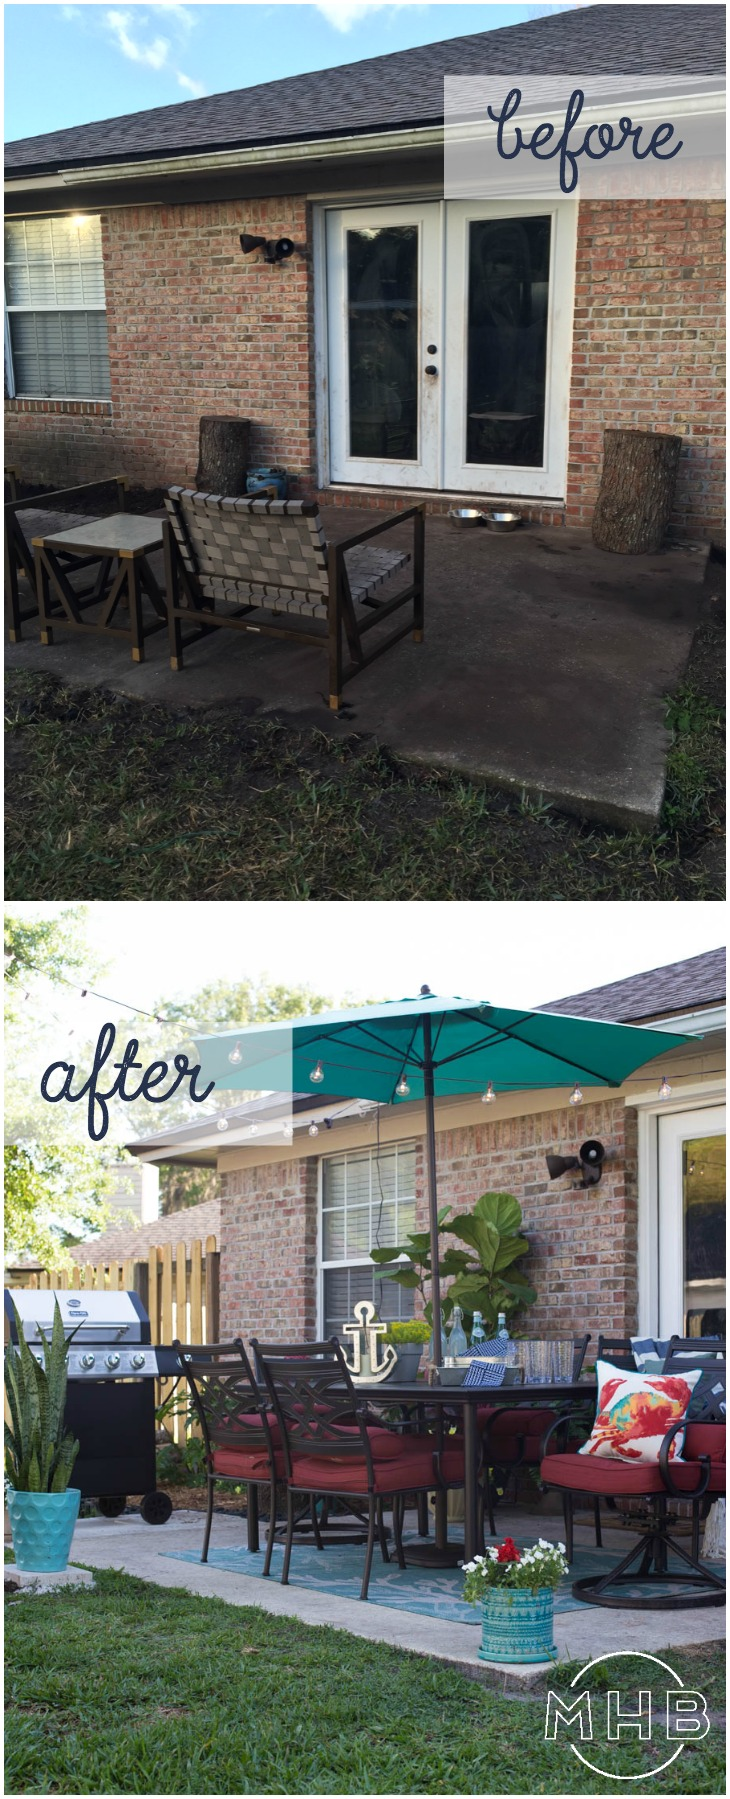 Achievable Outdoor Living Space - Complete Patio Makeover